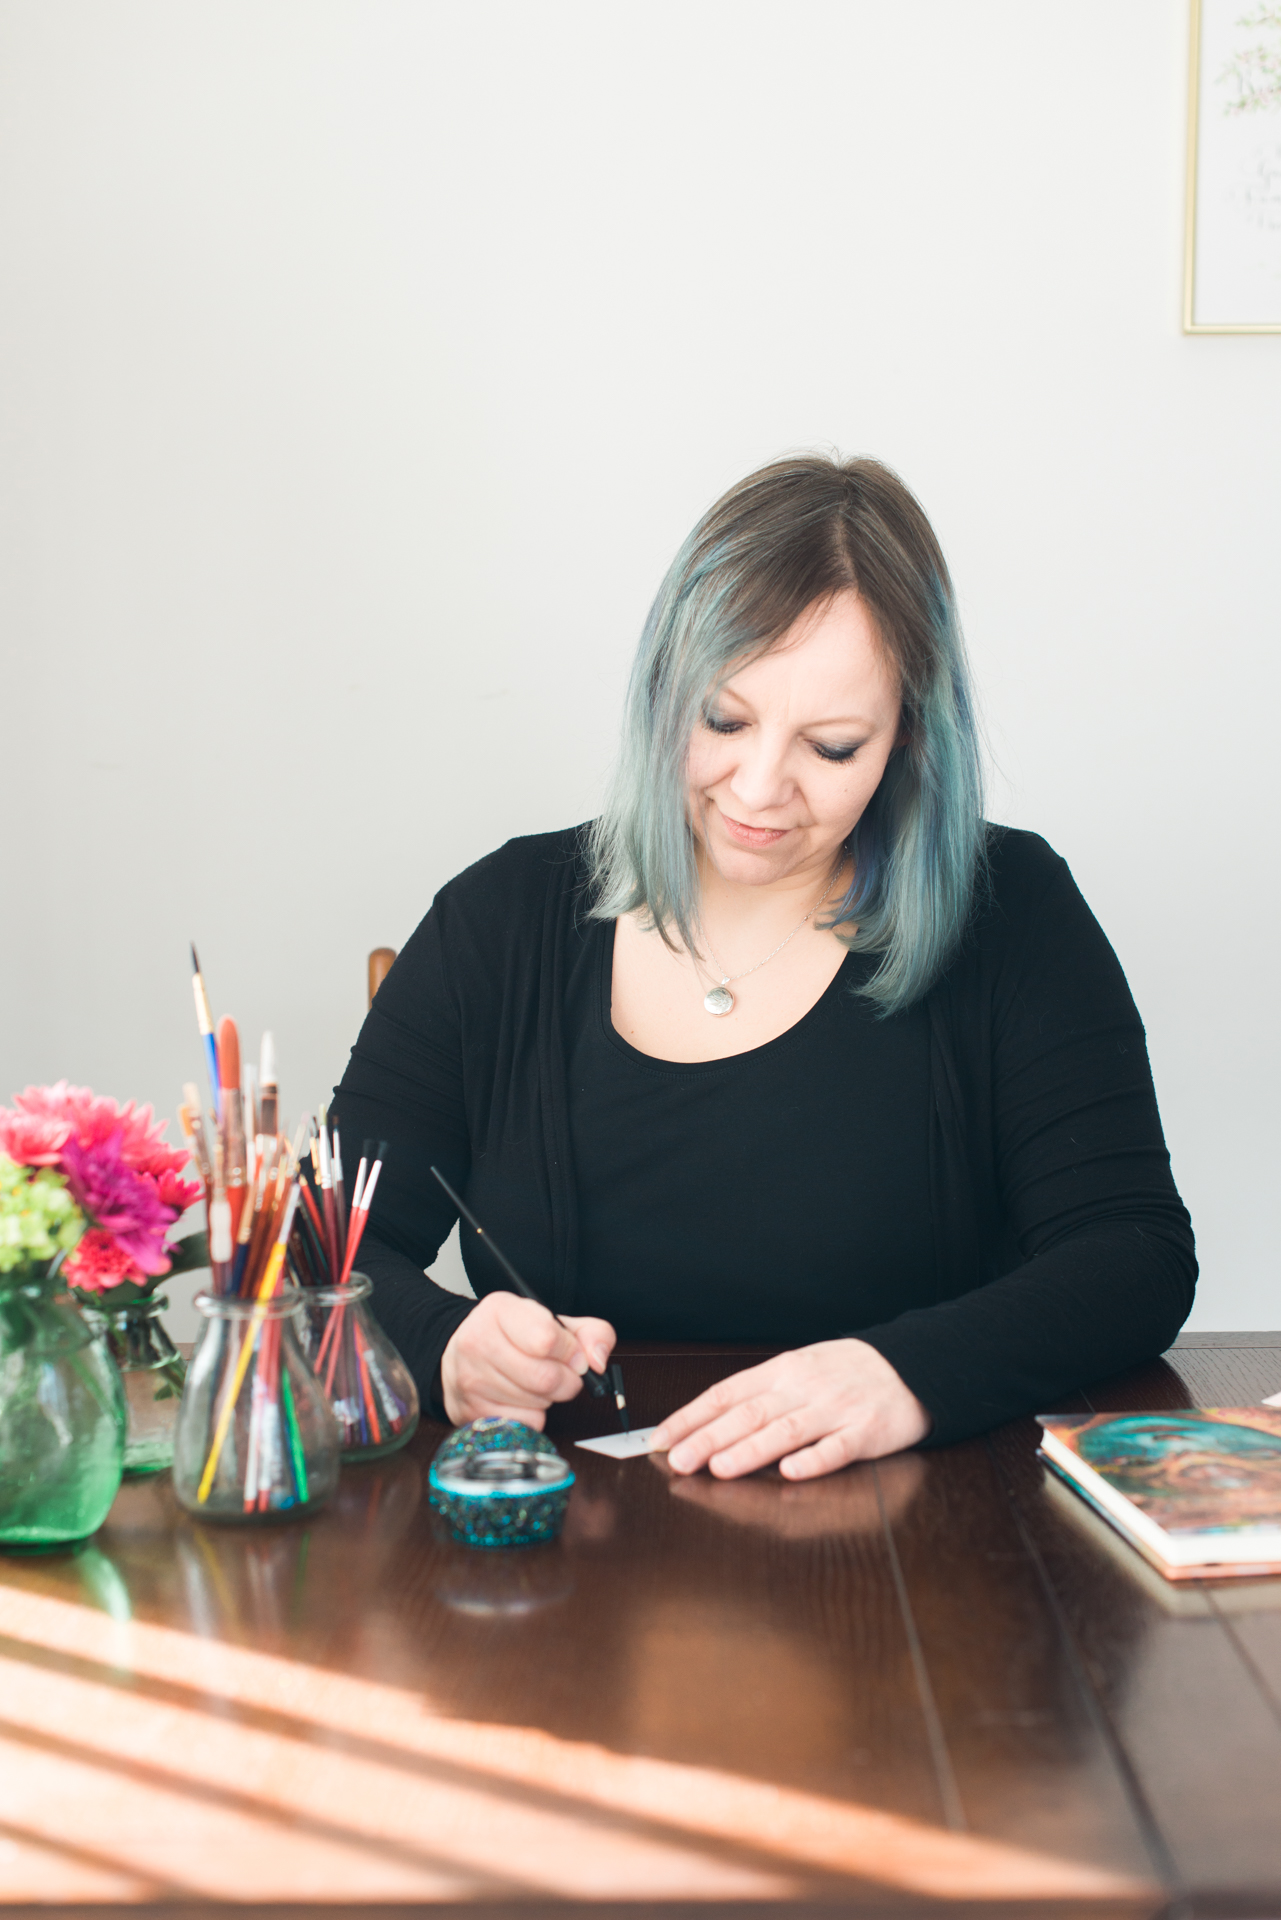 Summer calligraphy workshop dates for your diary!